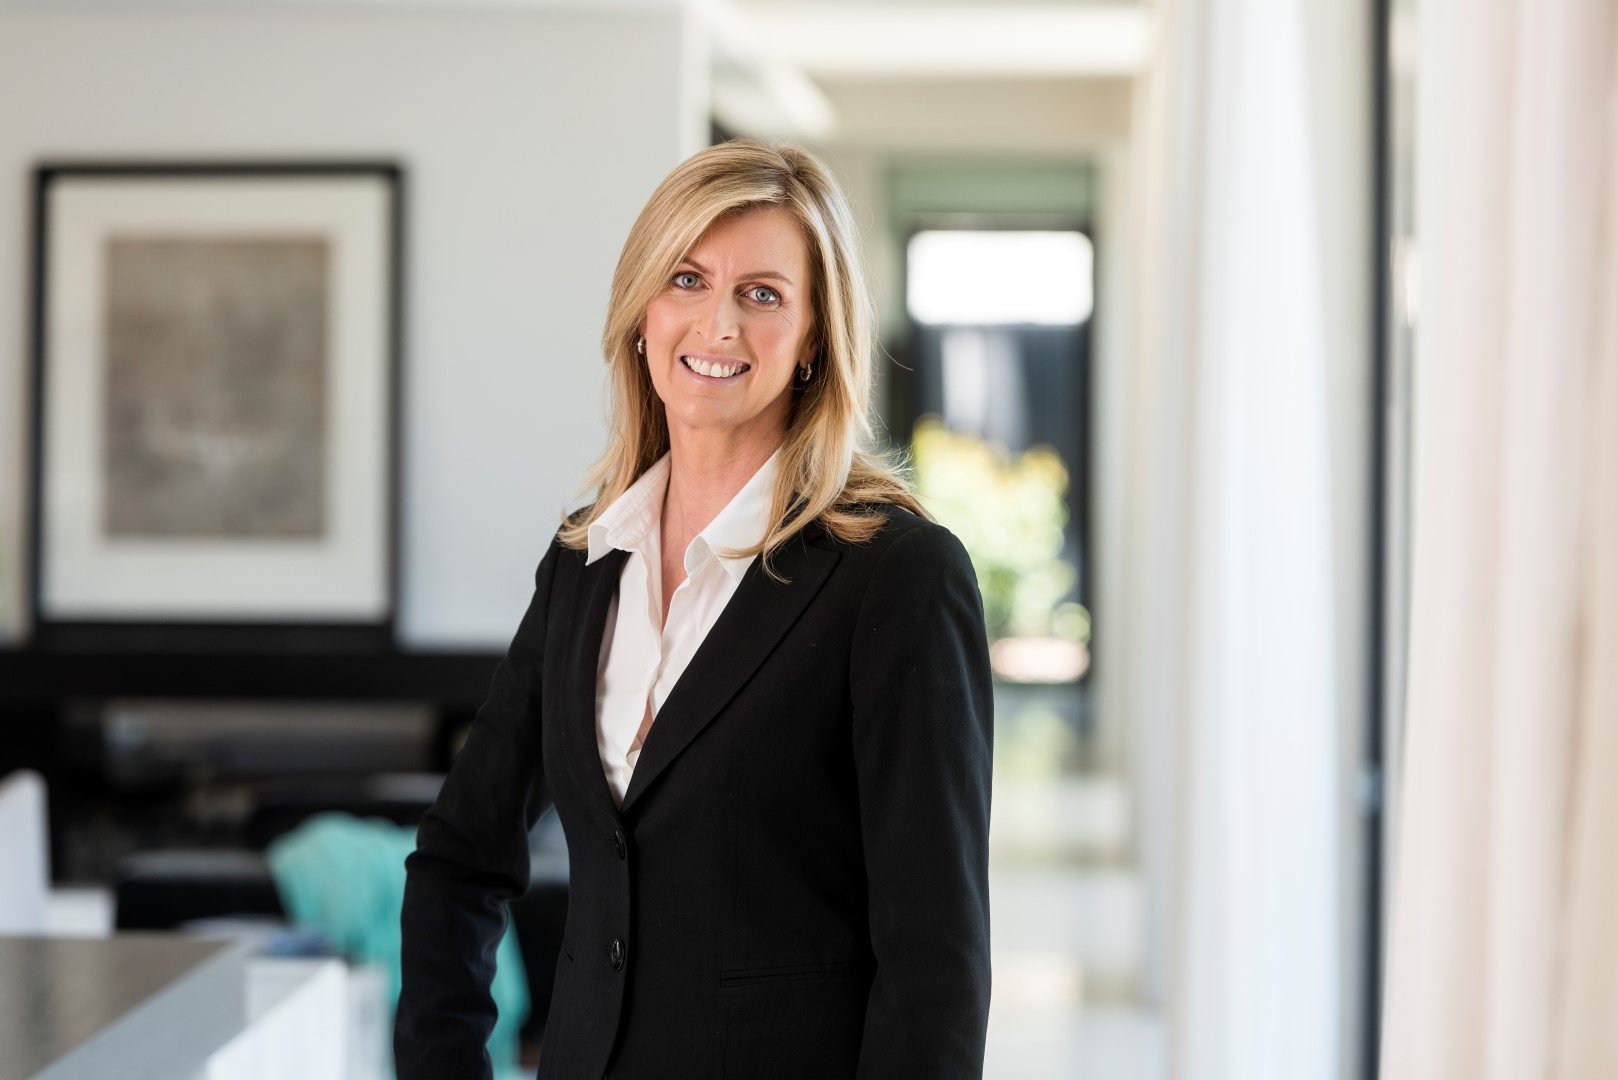 REIWA councillor Suzanne Brown has slammed talk of an investor levy.